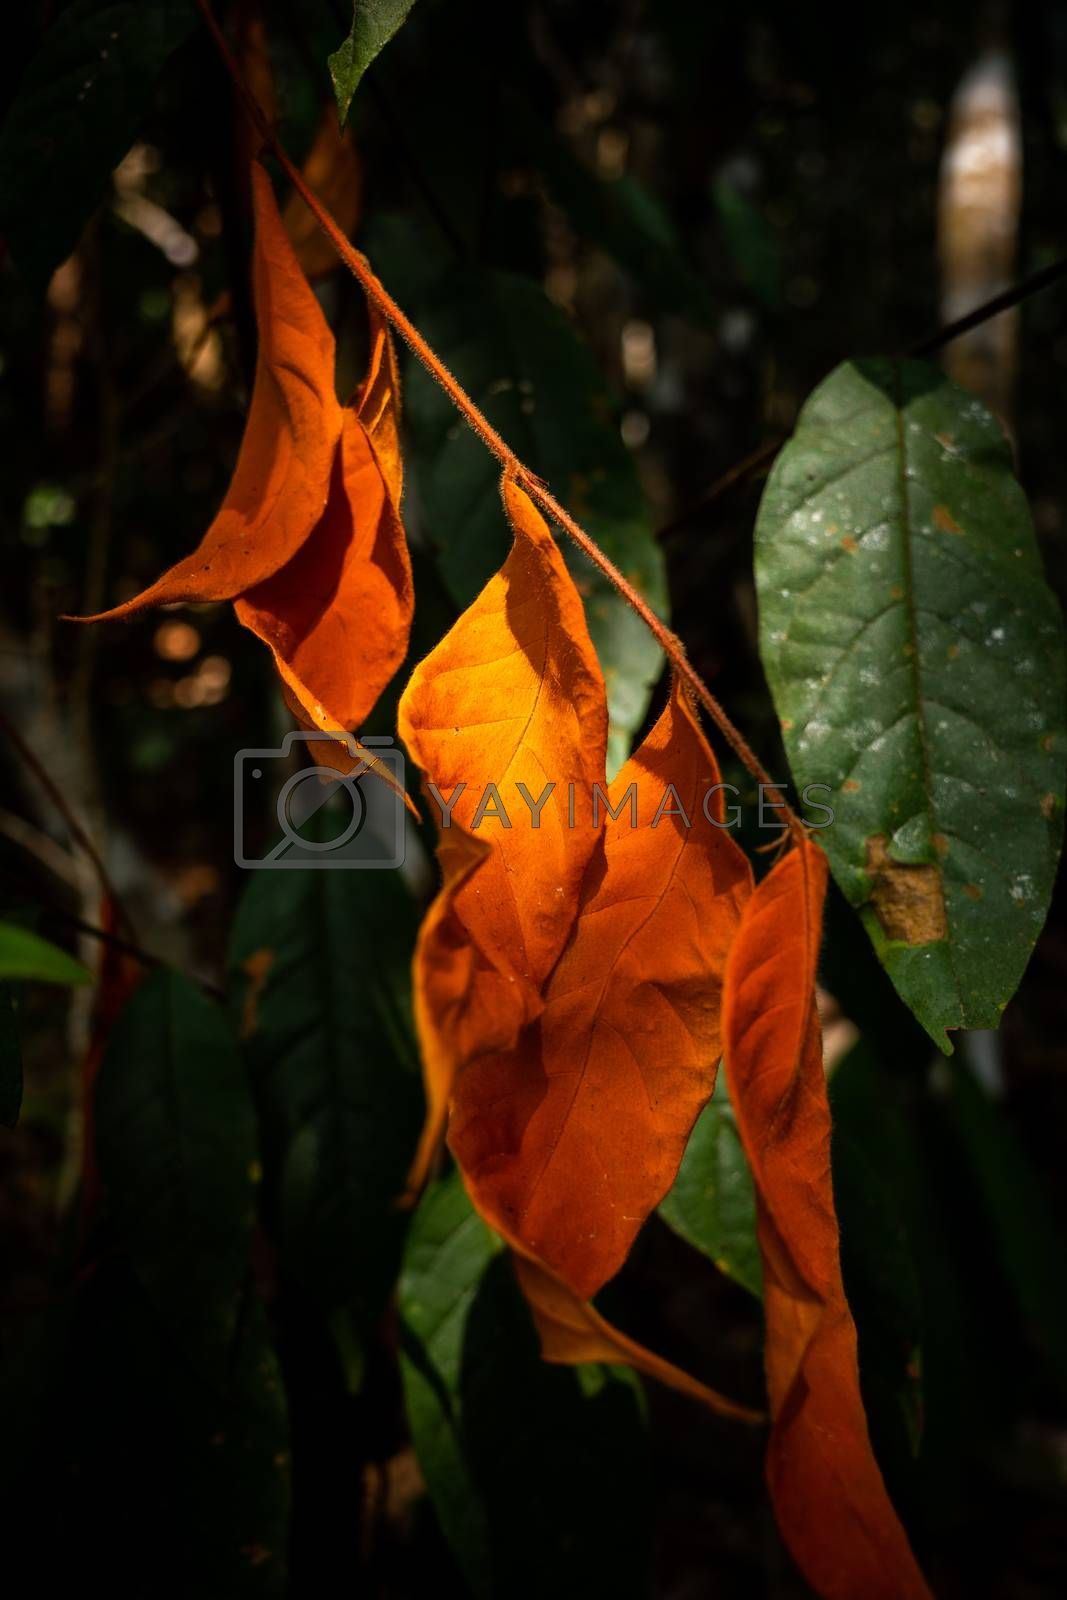 Close focus on saturated orange leaves touching sunlight on dark background inside tropical rainforest.